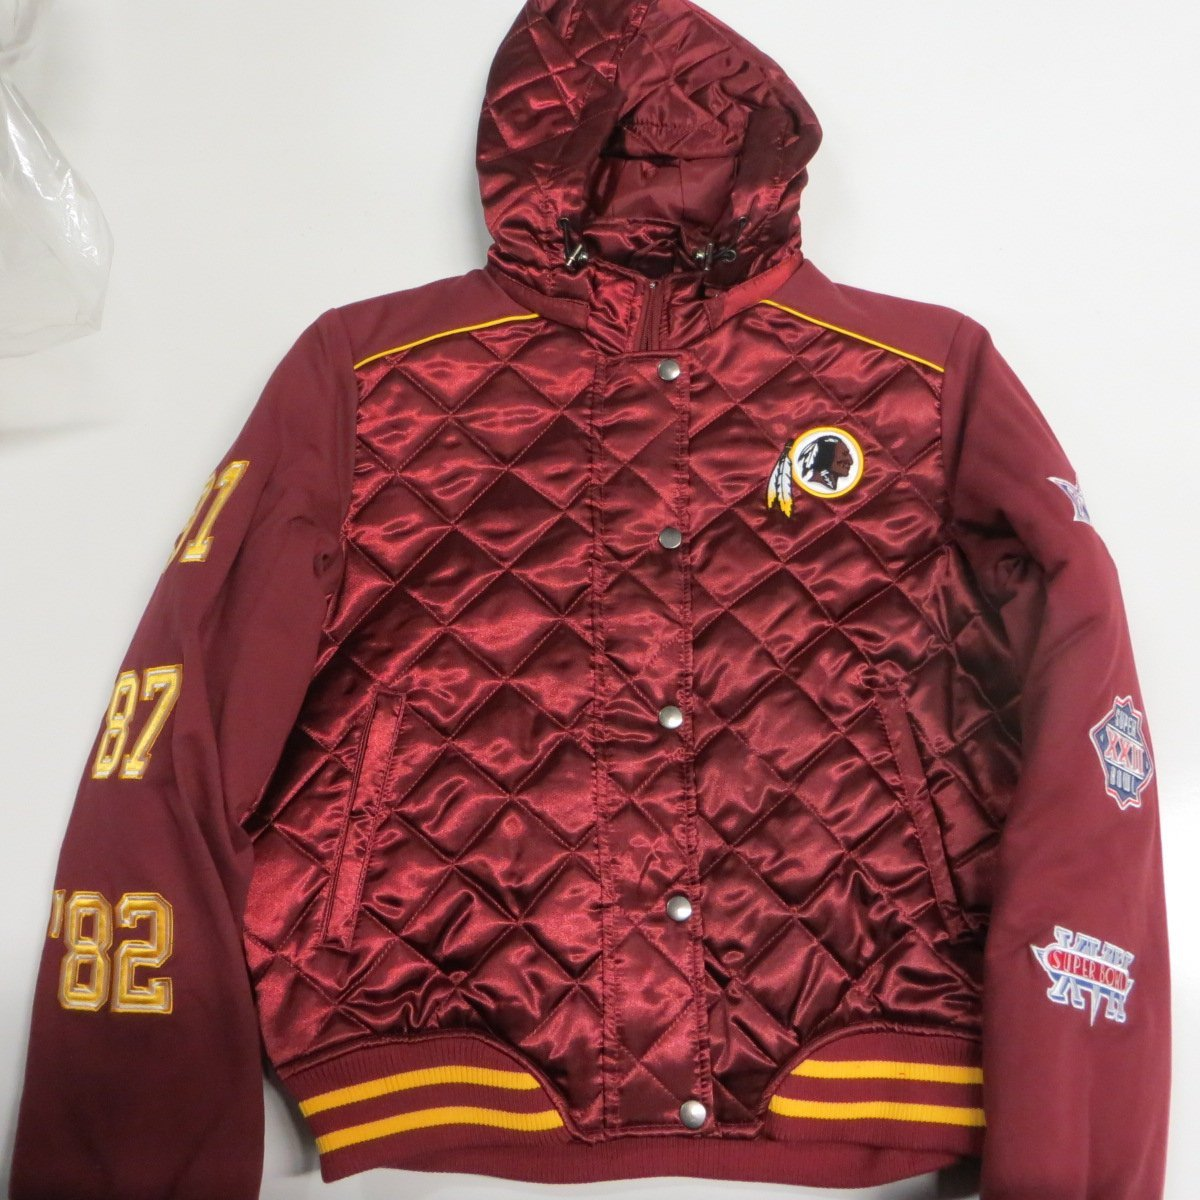 NFL Washington Redskins Womens Large Full Zip Quilted Midweight 3 Time Super Bowl Champion Jacket with Removable Hood ARDK 27 L Ham AMZ 1012